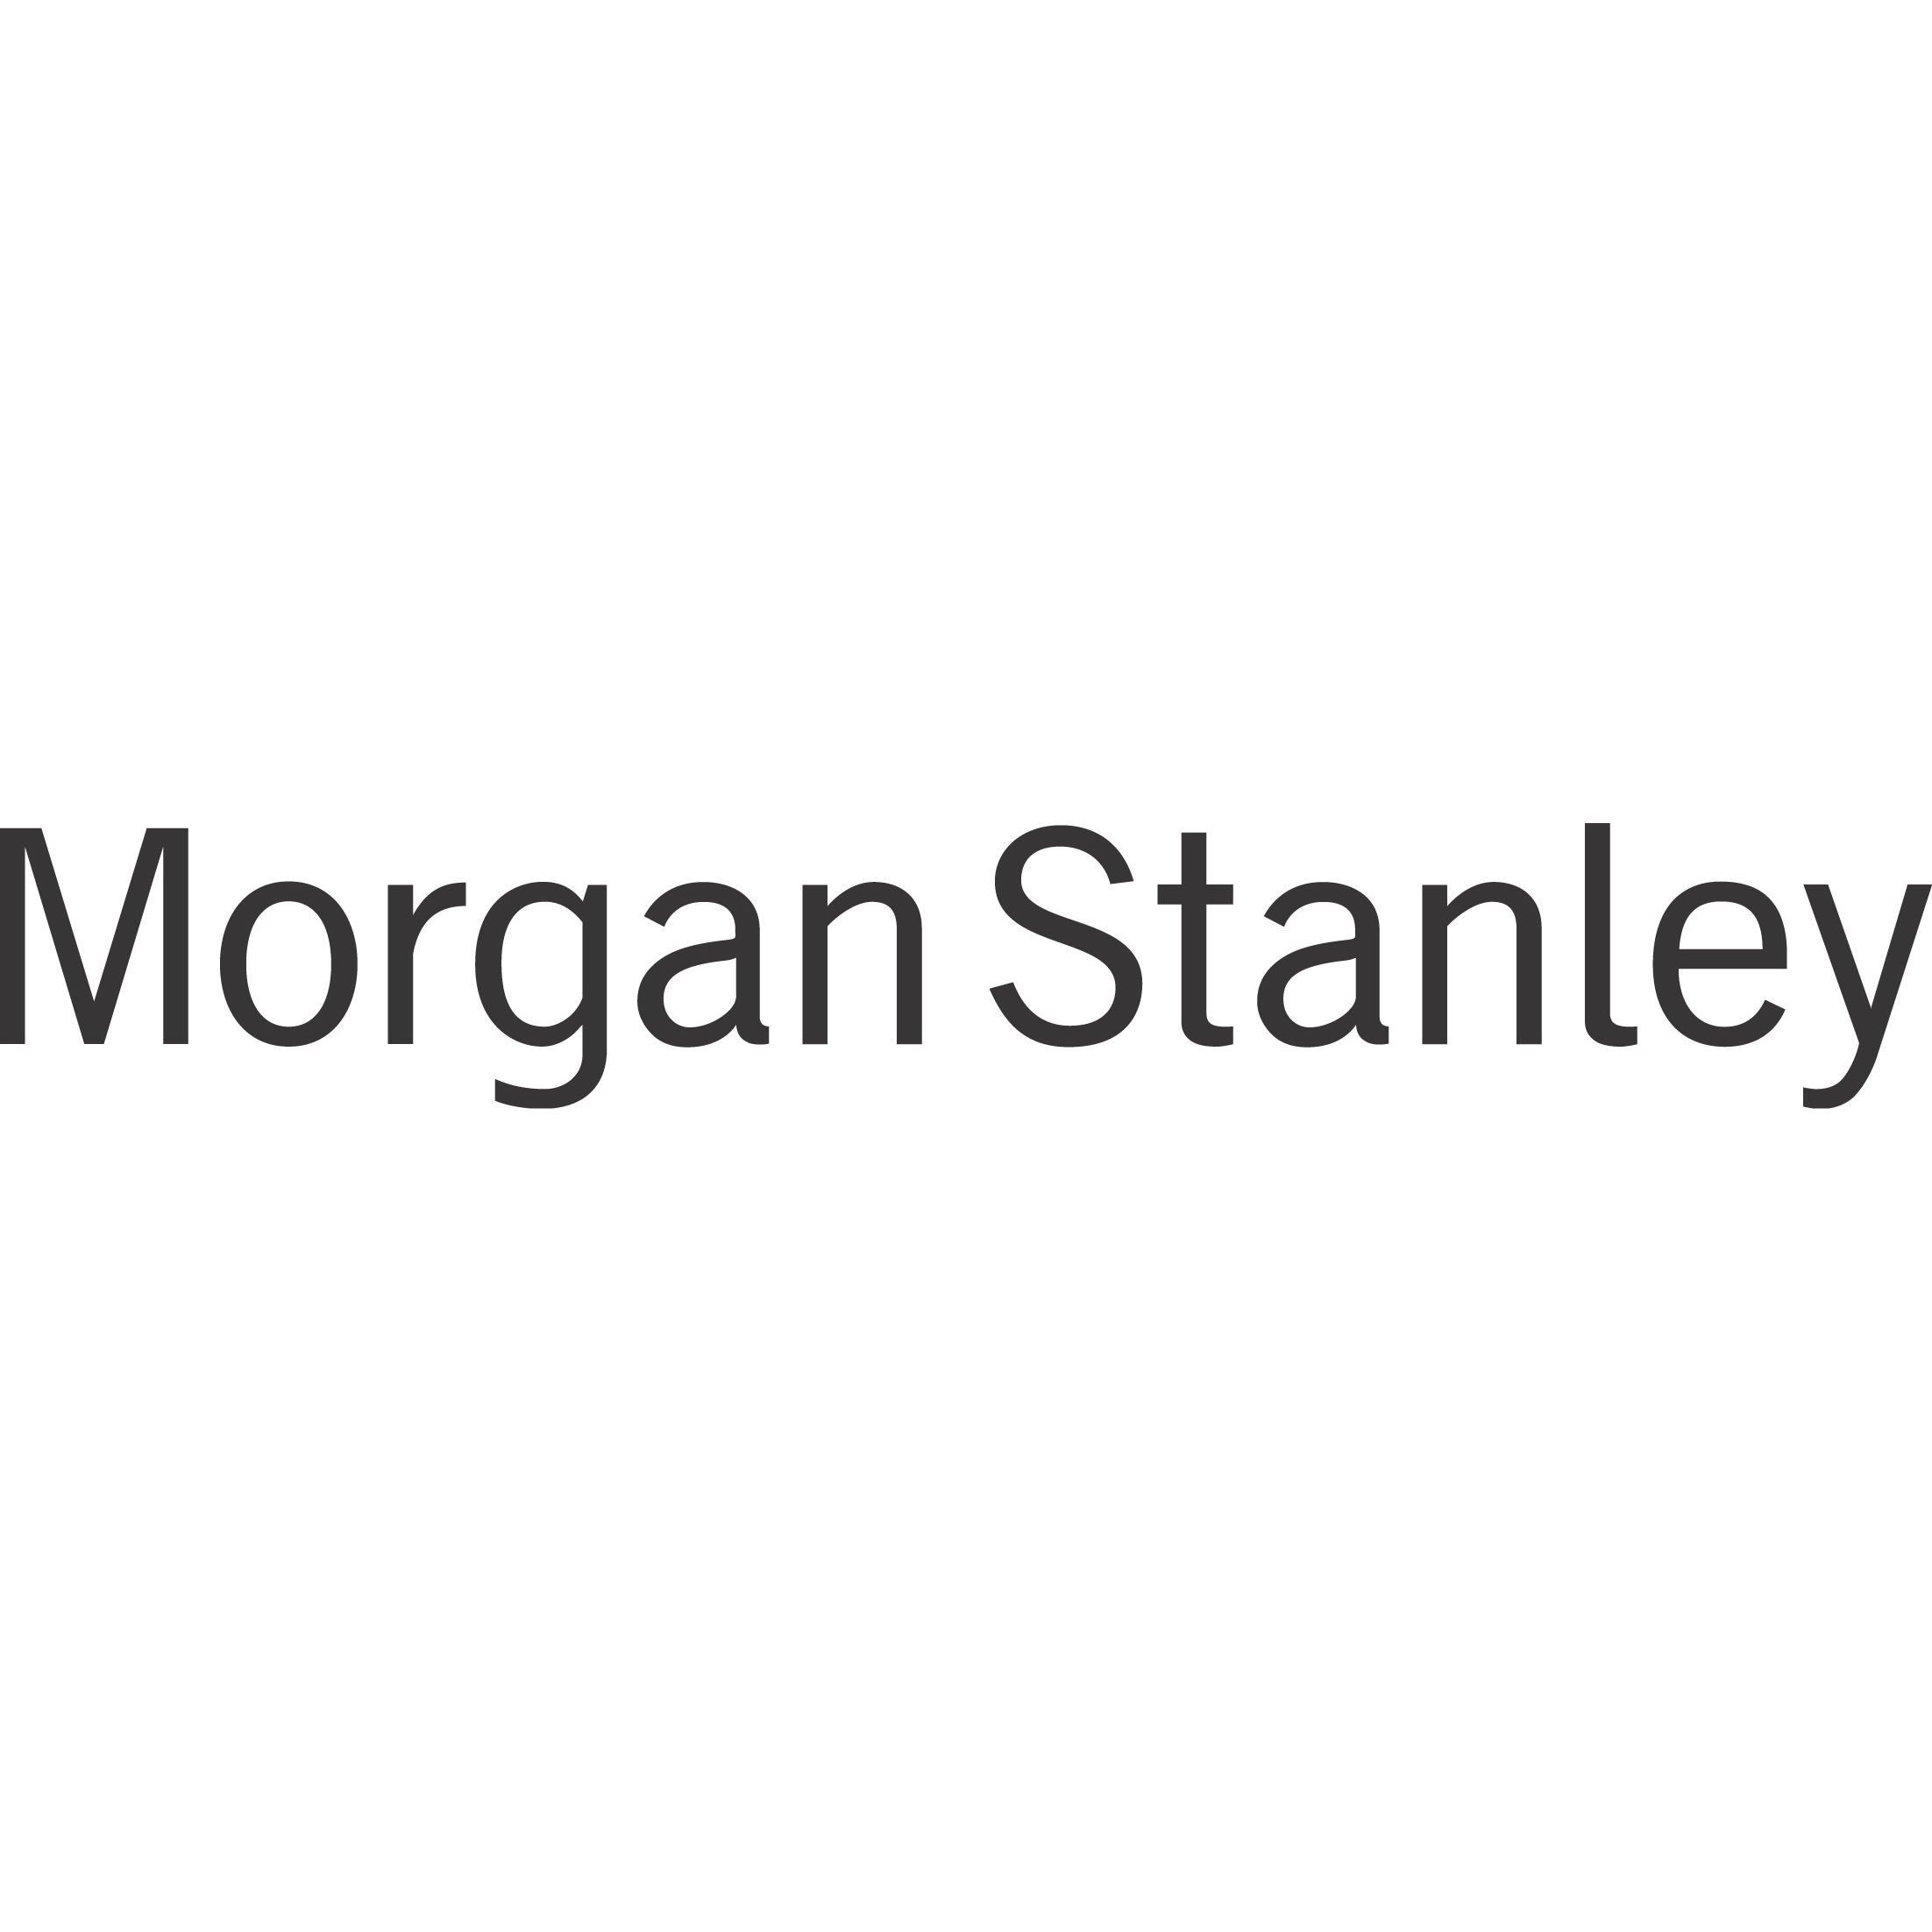 Louis D Greifenstein - Morgan Stanley | Financial Advisor in Barrington,Illinois